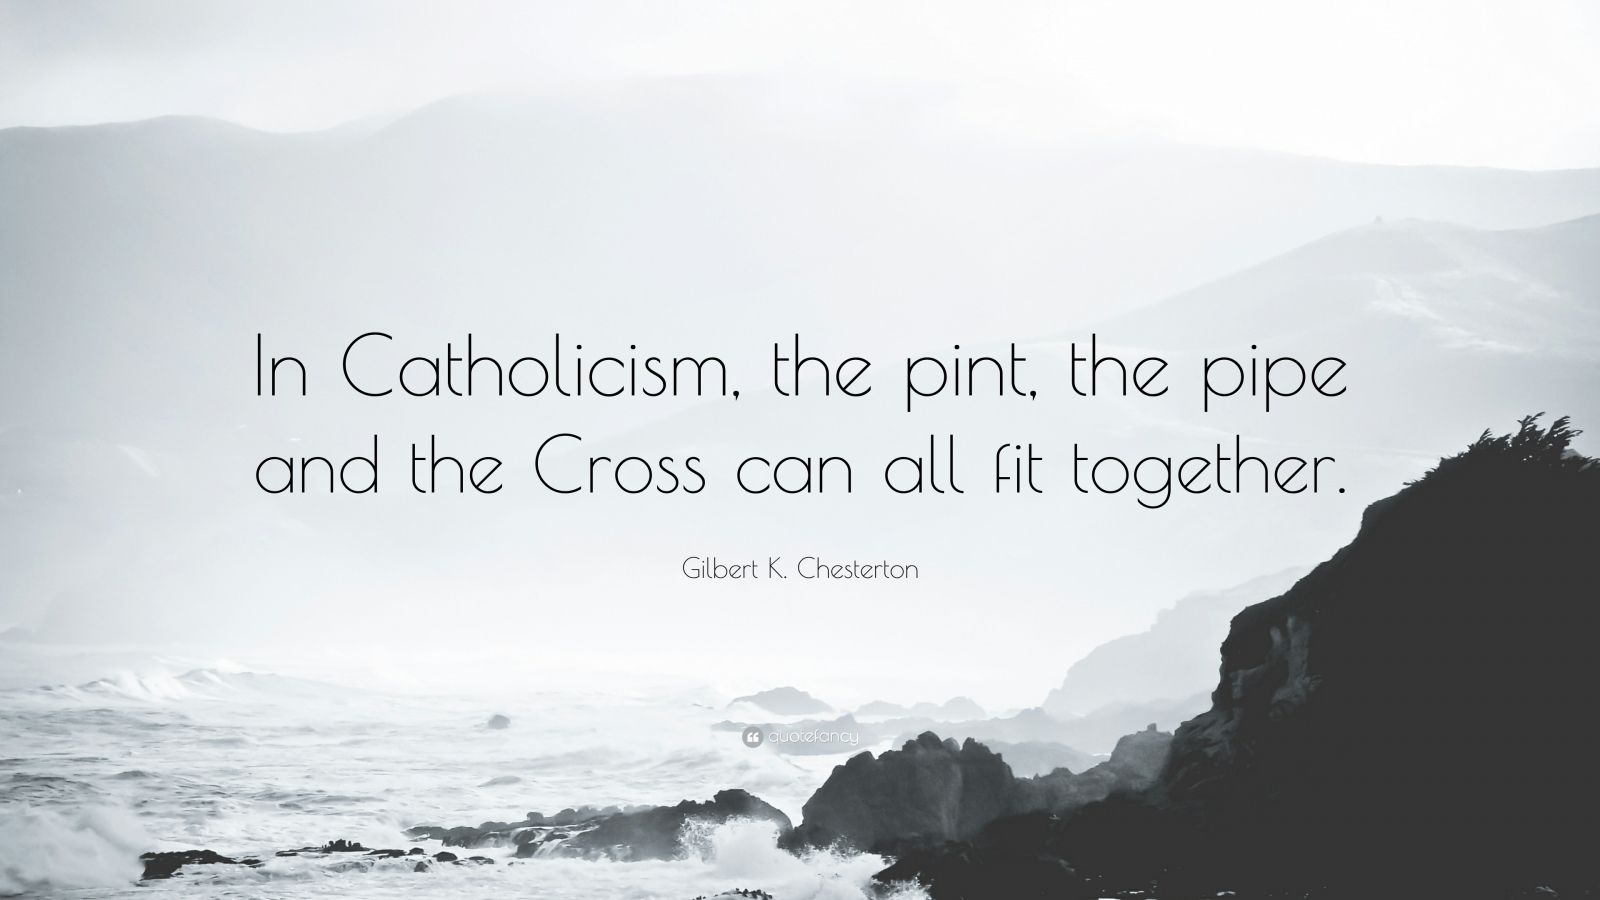 """Gilbert K. Chesterton Quote: """"In Catholicism, the pint, the pipe and the Cross can all fit together."""""""